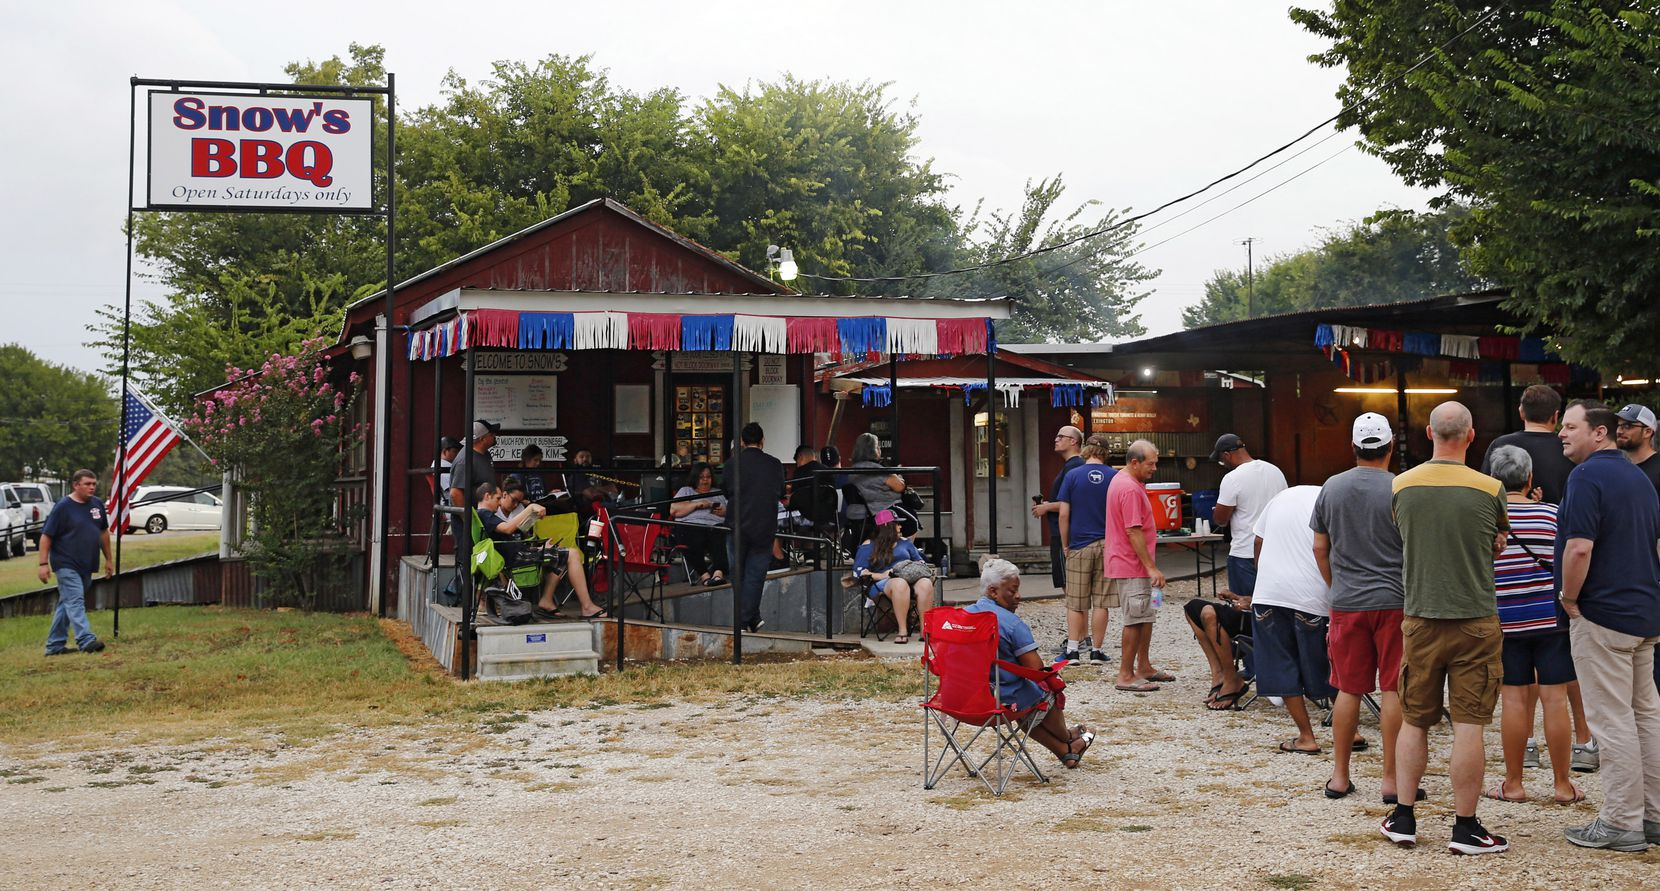 People wait in line for Snow's BBQ to open at 8 a.m.